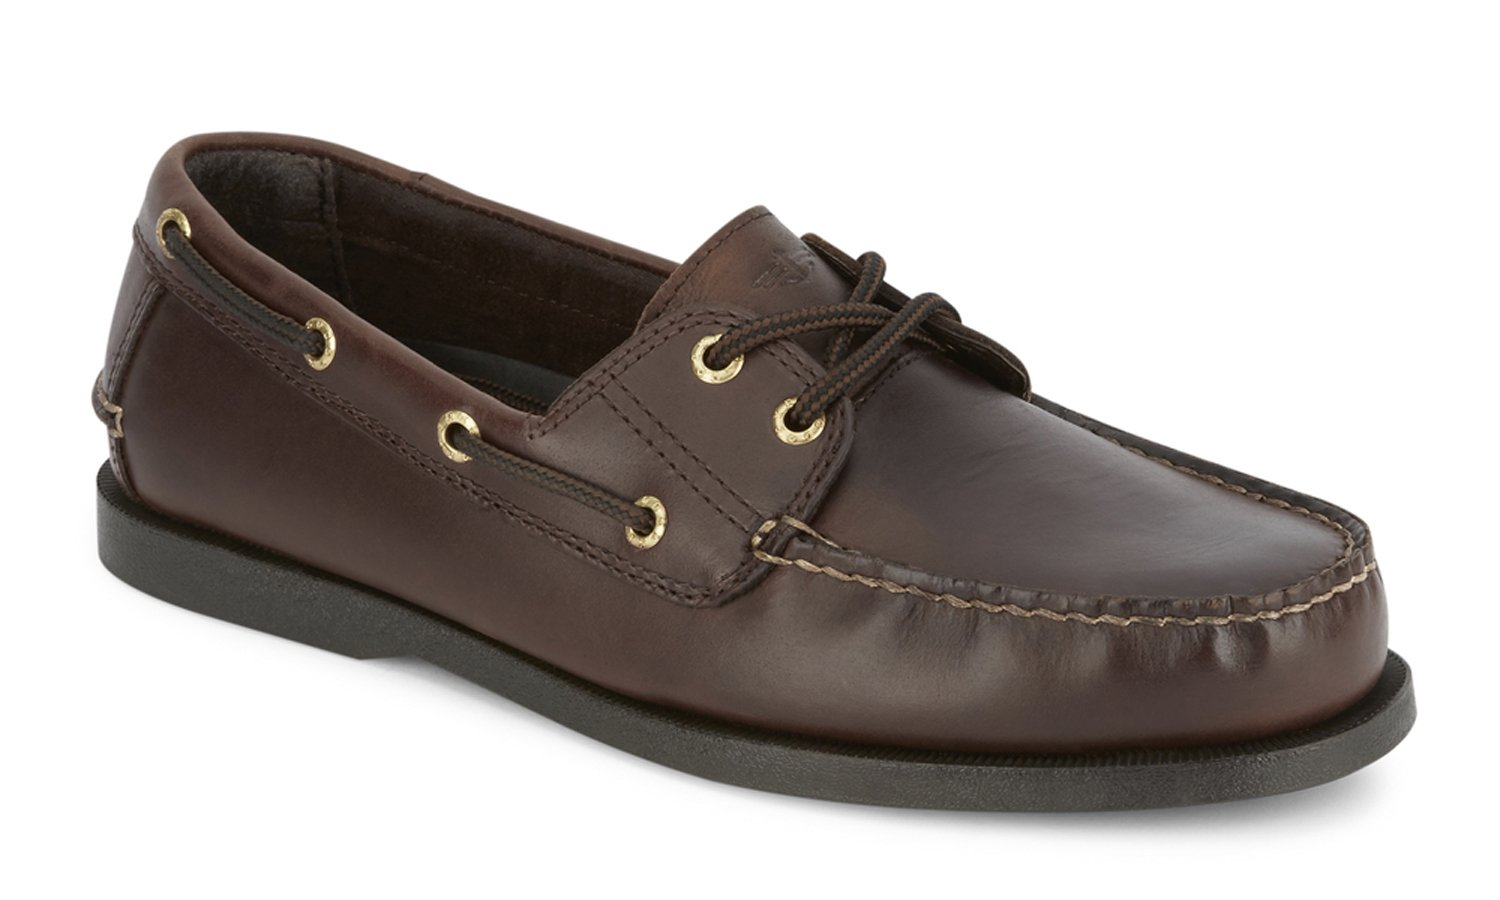 Dockers Men's Vargas Leather Handsewn Boat Shoe,Raisin, 11.5 M US by Dockers